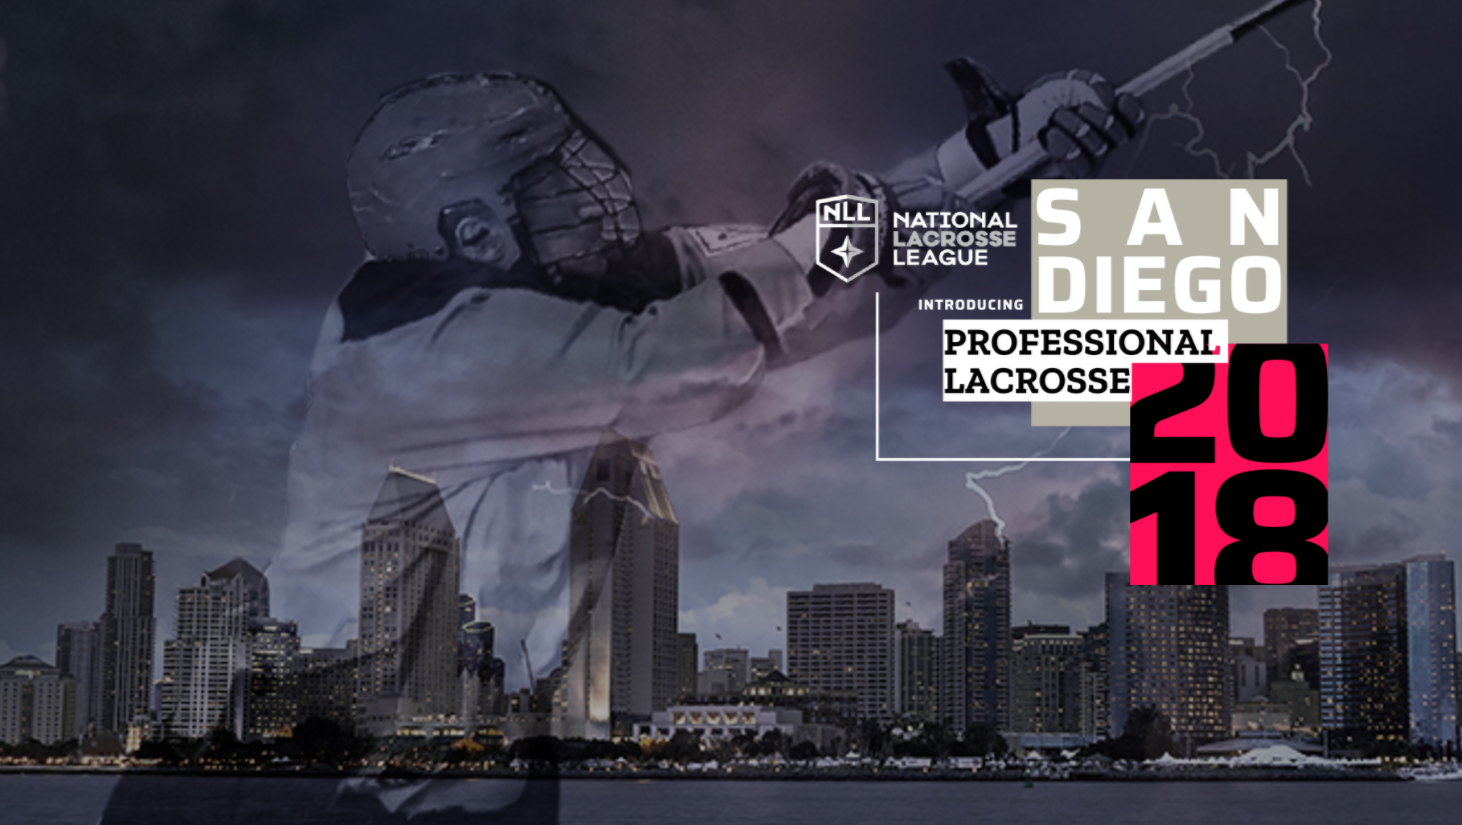 Indoor Lacrosse Team To Play In San Diego KPBS - Us government map nll